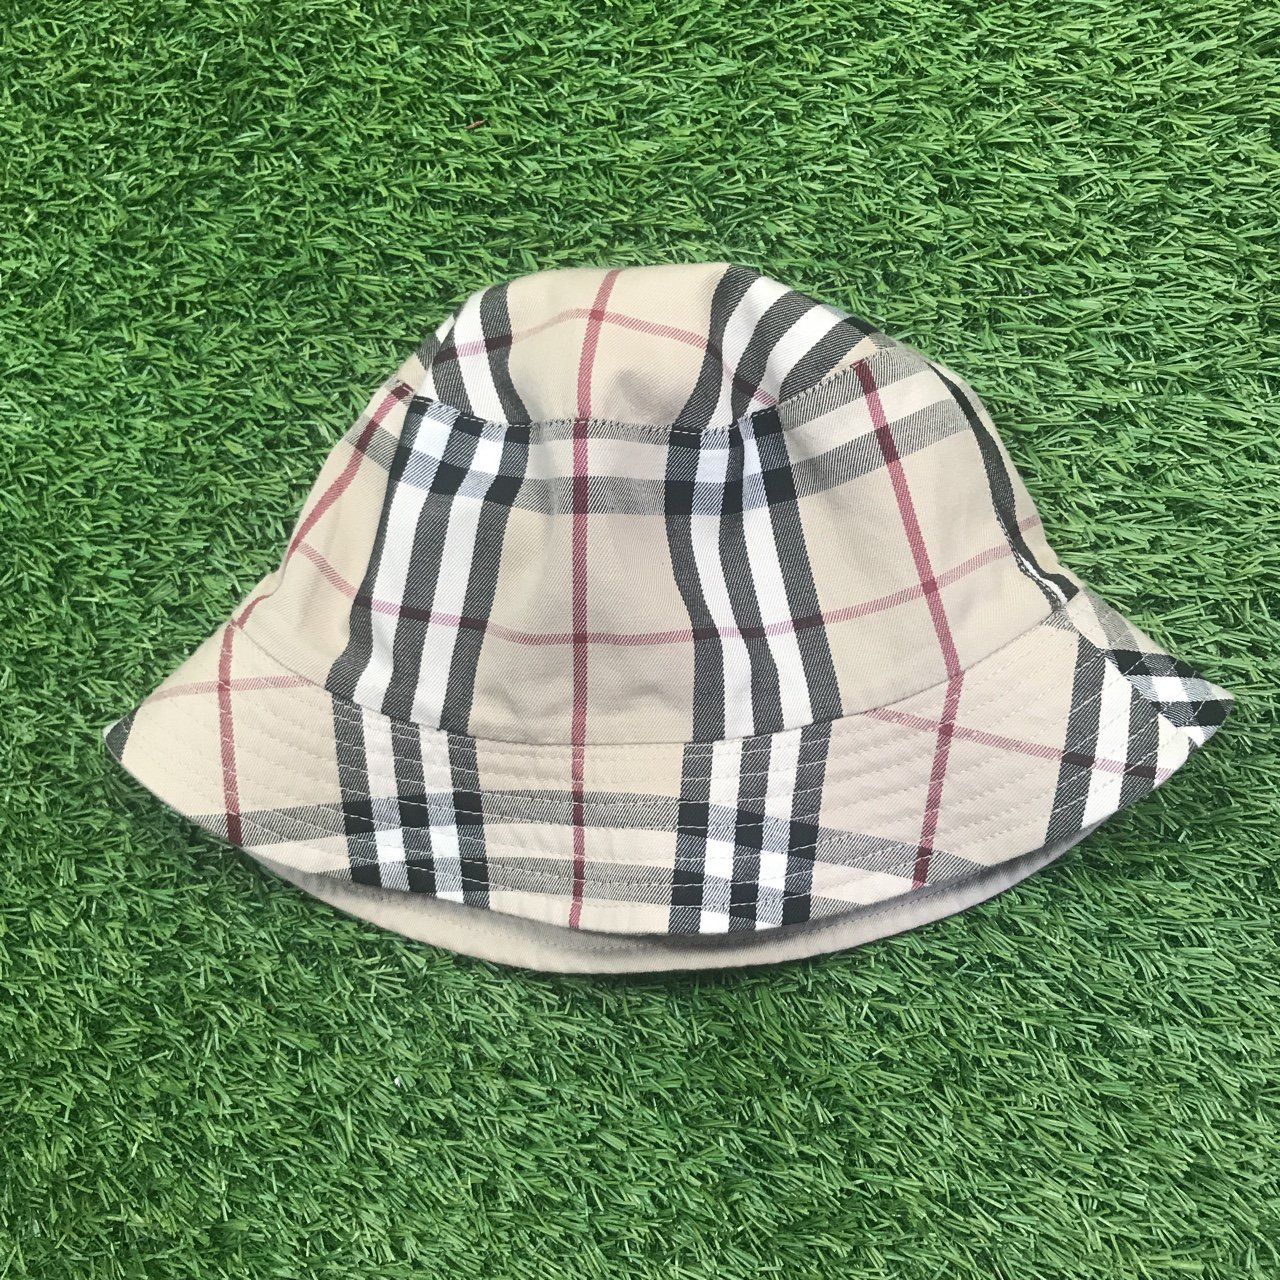 283a1b893c2 BURBERRY reversible nova check bucket hat in VN new - Depop